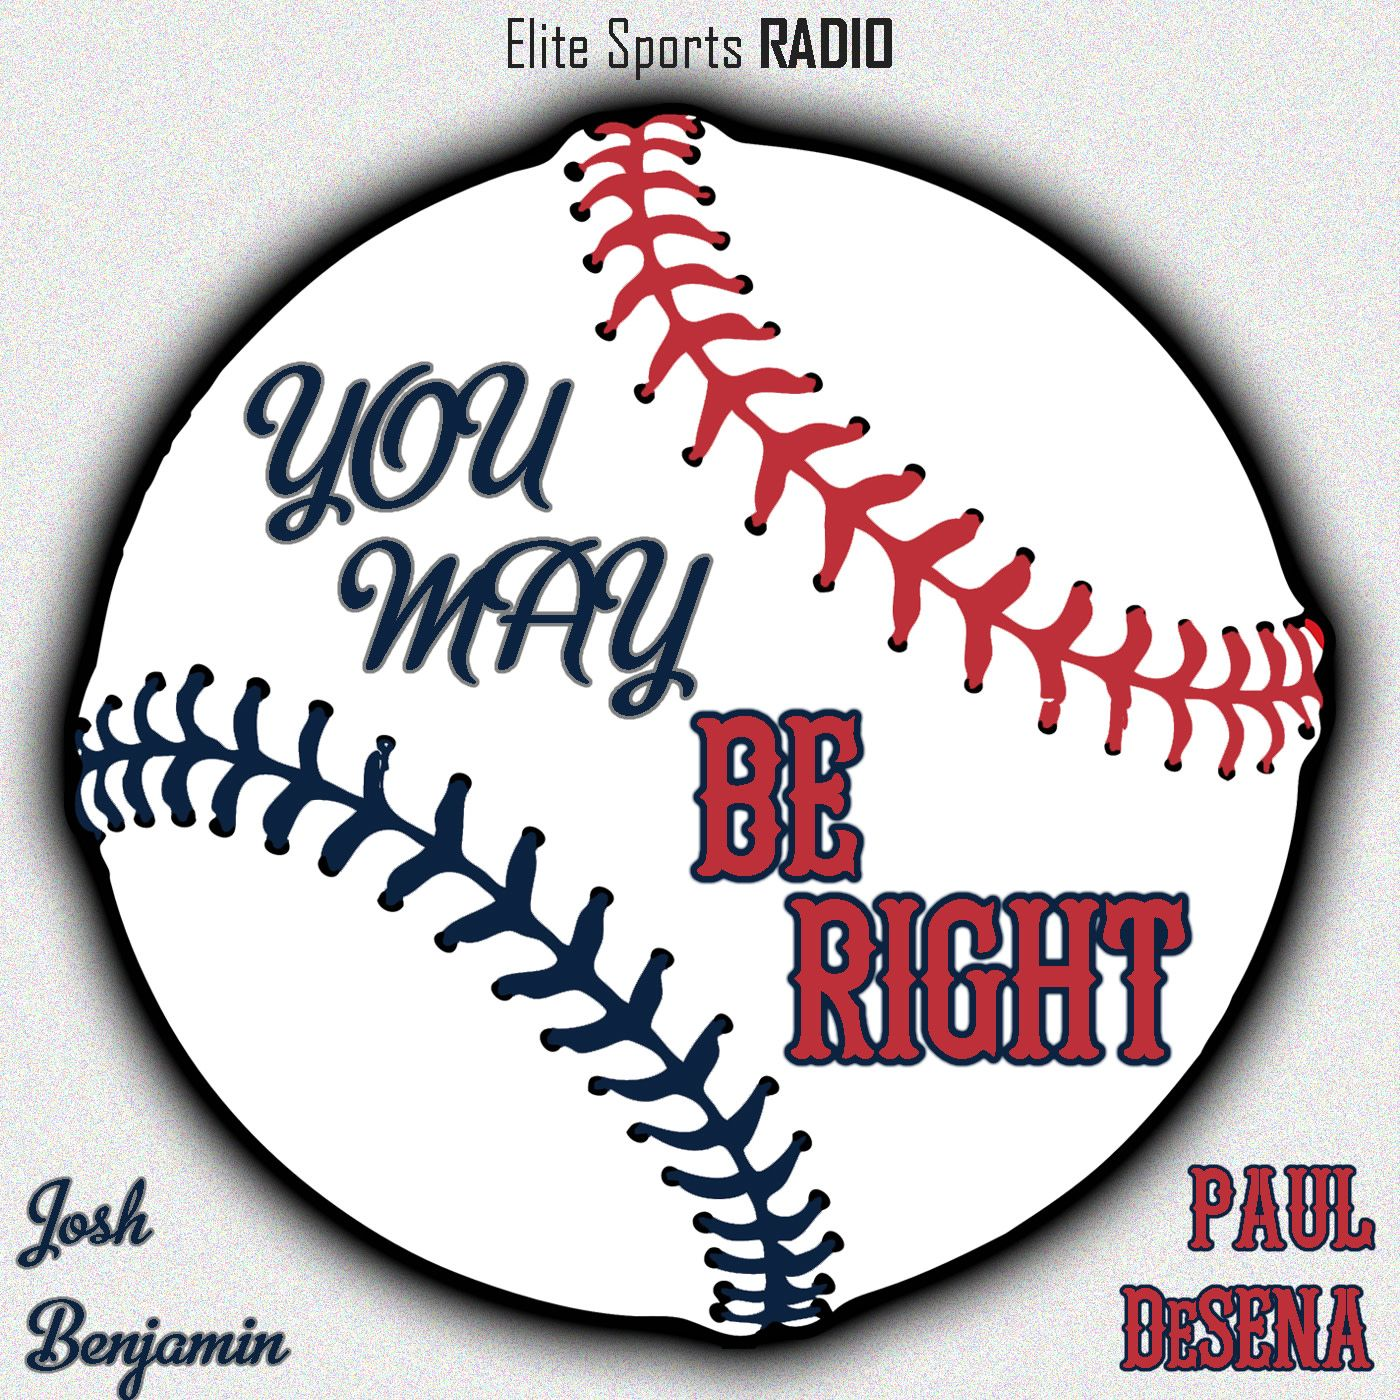 You May Be Right Podcast: Requiem For The New York yankees